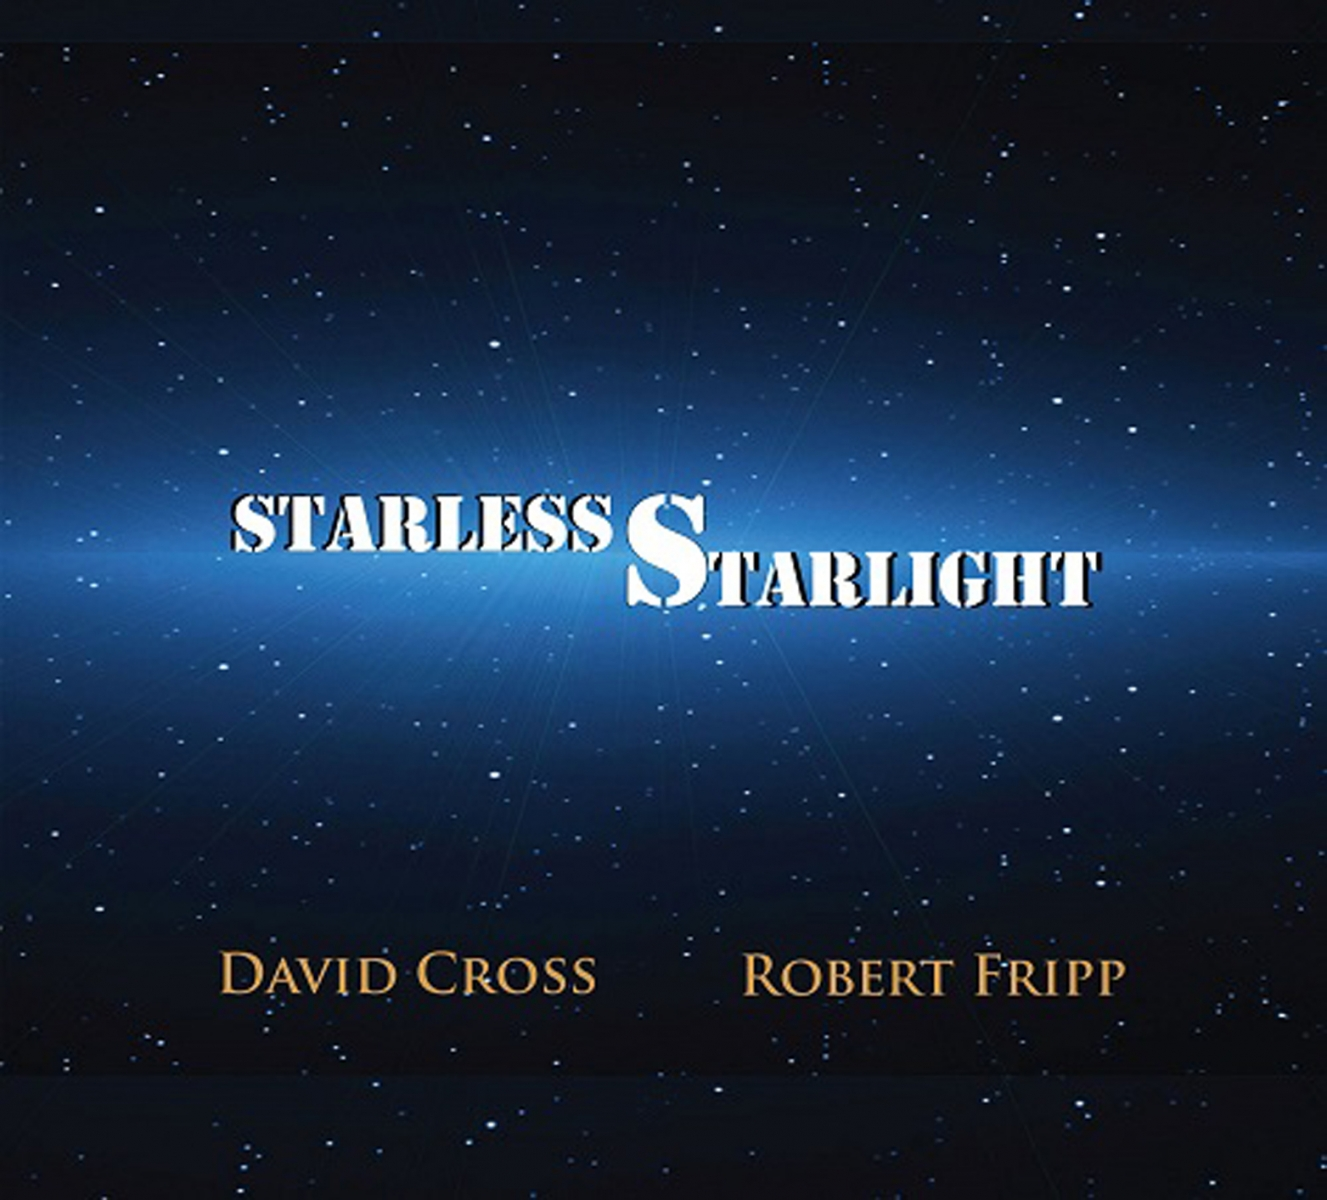 Starless Starlight - David Cross & Robert Fripp